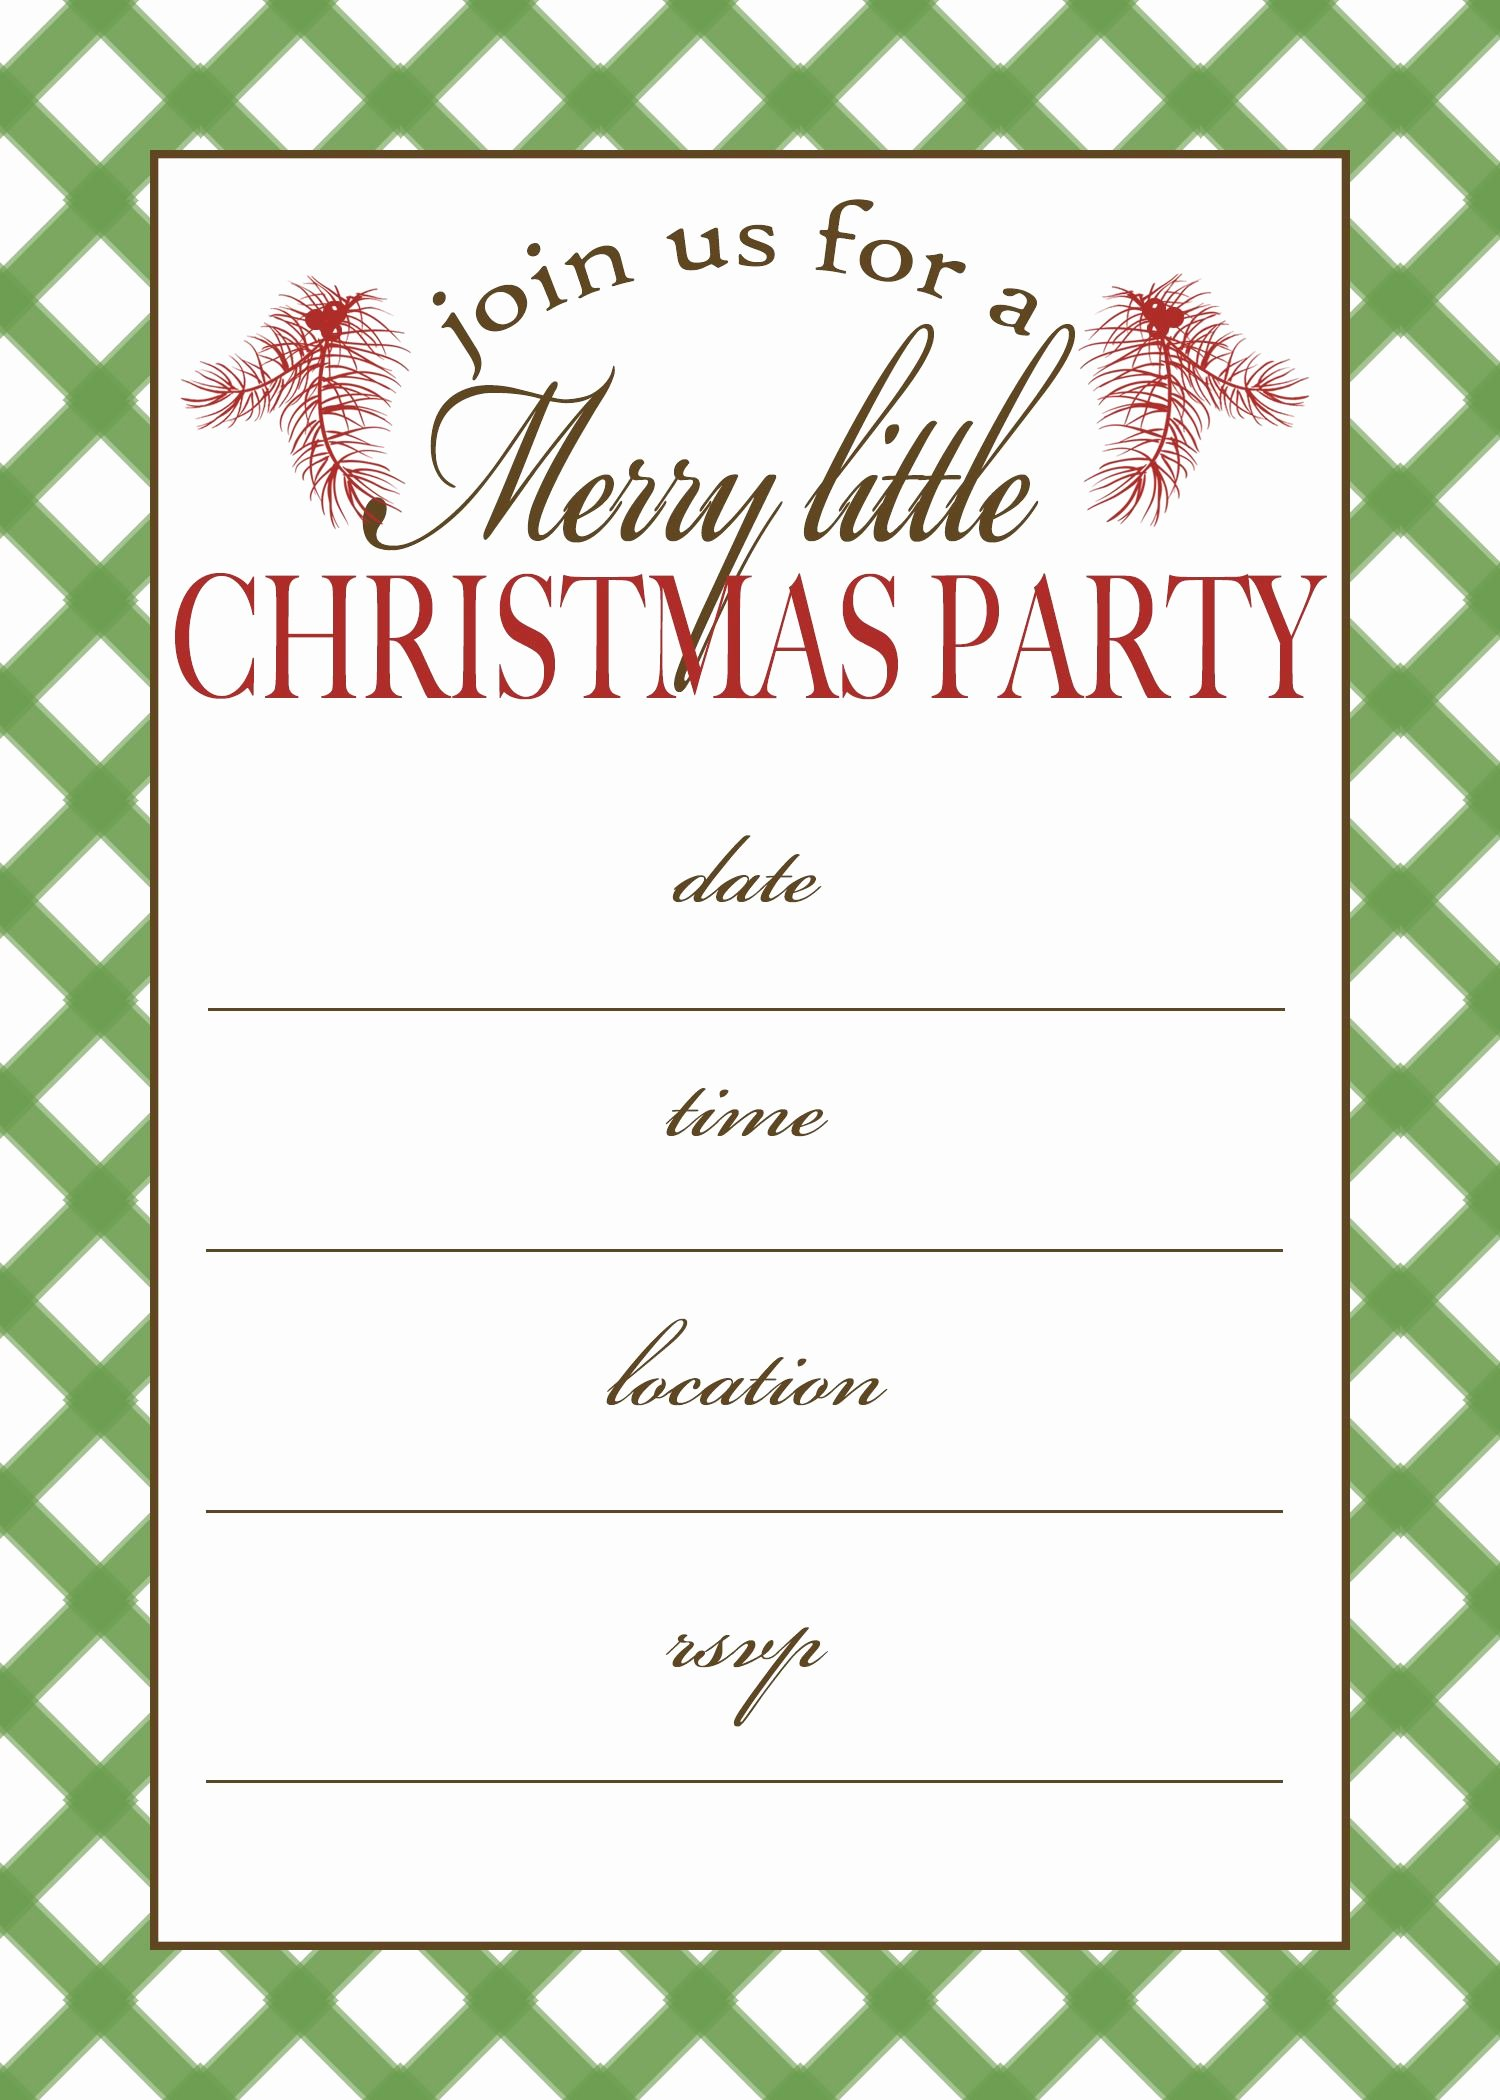 Christmas Party Invite Template New Free Printable Christmas Party Invitation